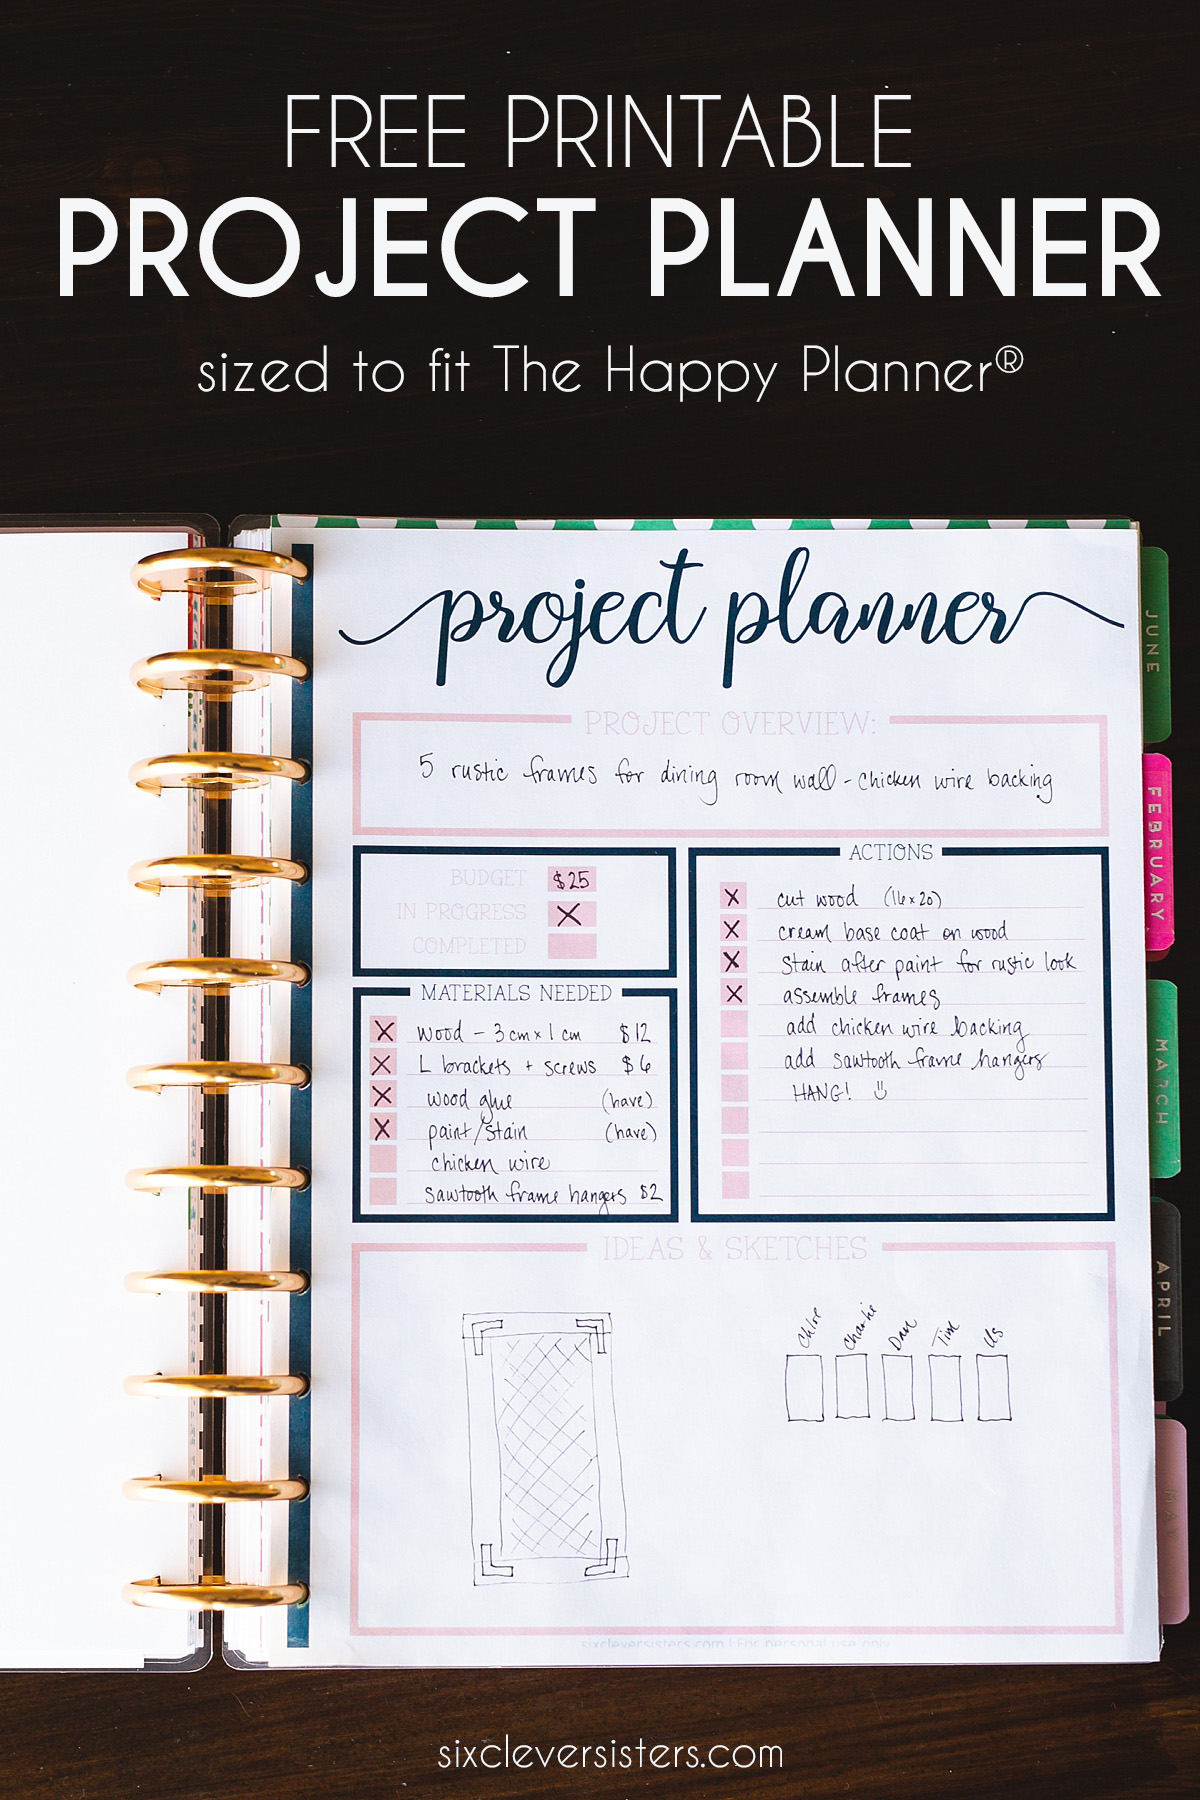 photo regarding Printable Project named Challenge Planner Absolutely free printable for your planner! - 6